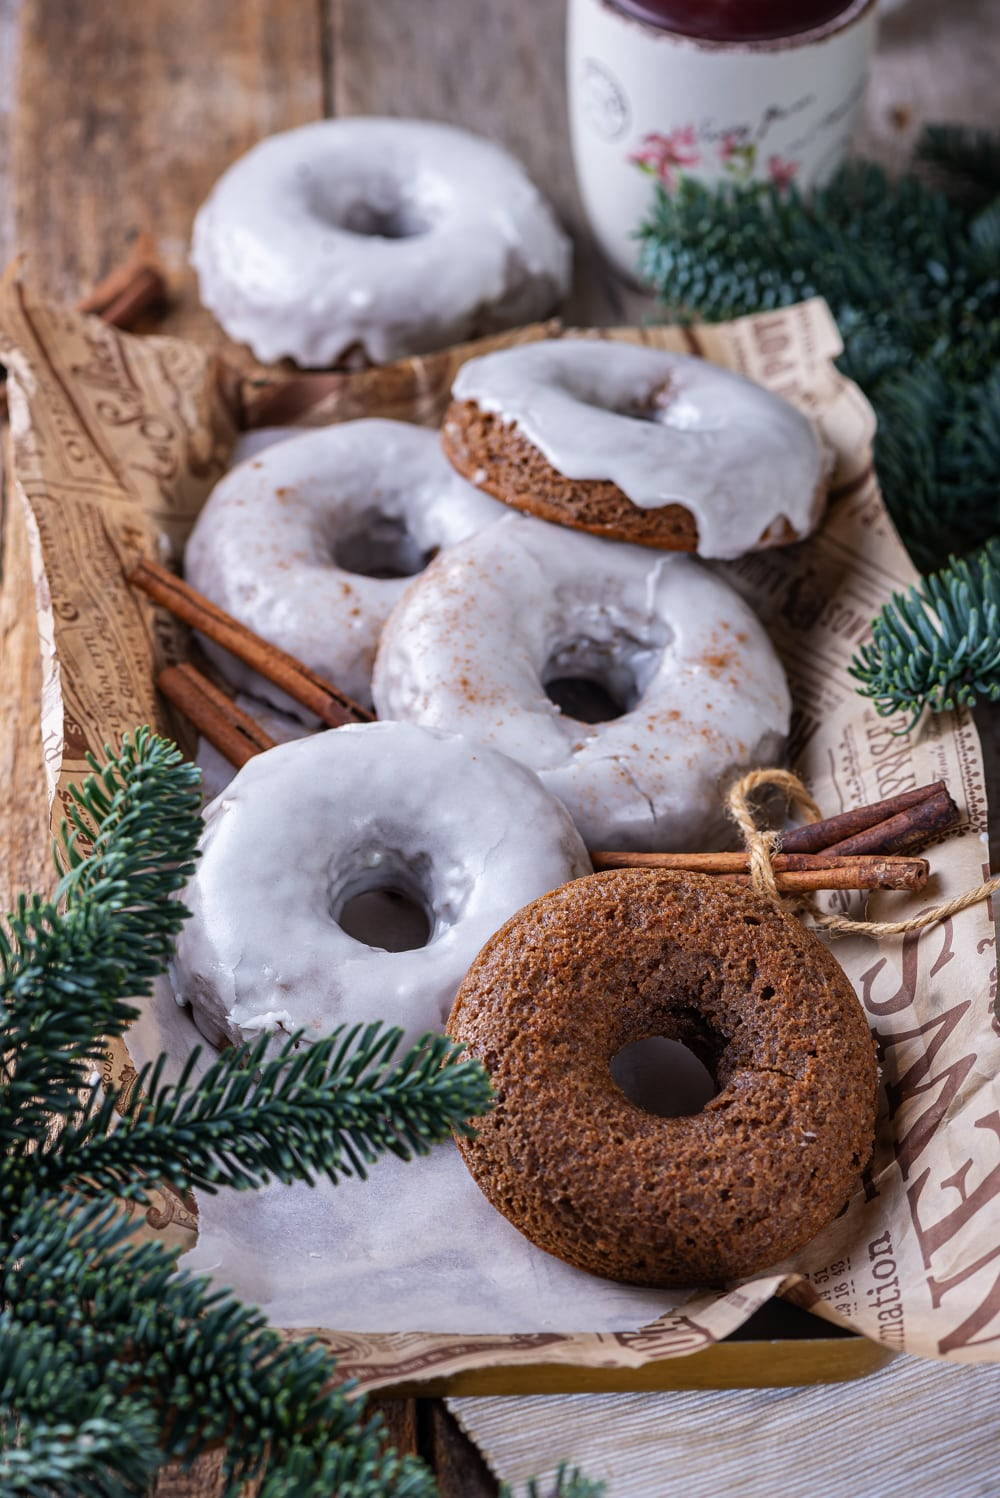 Five glazed gingerbread donuts and one plain gingerbread donut scattered on a piece of paper with cinnamon stick between the donuts. A glazed ginger bread donut is behind the piece of paper.